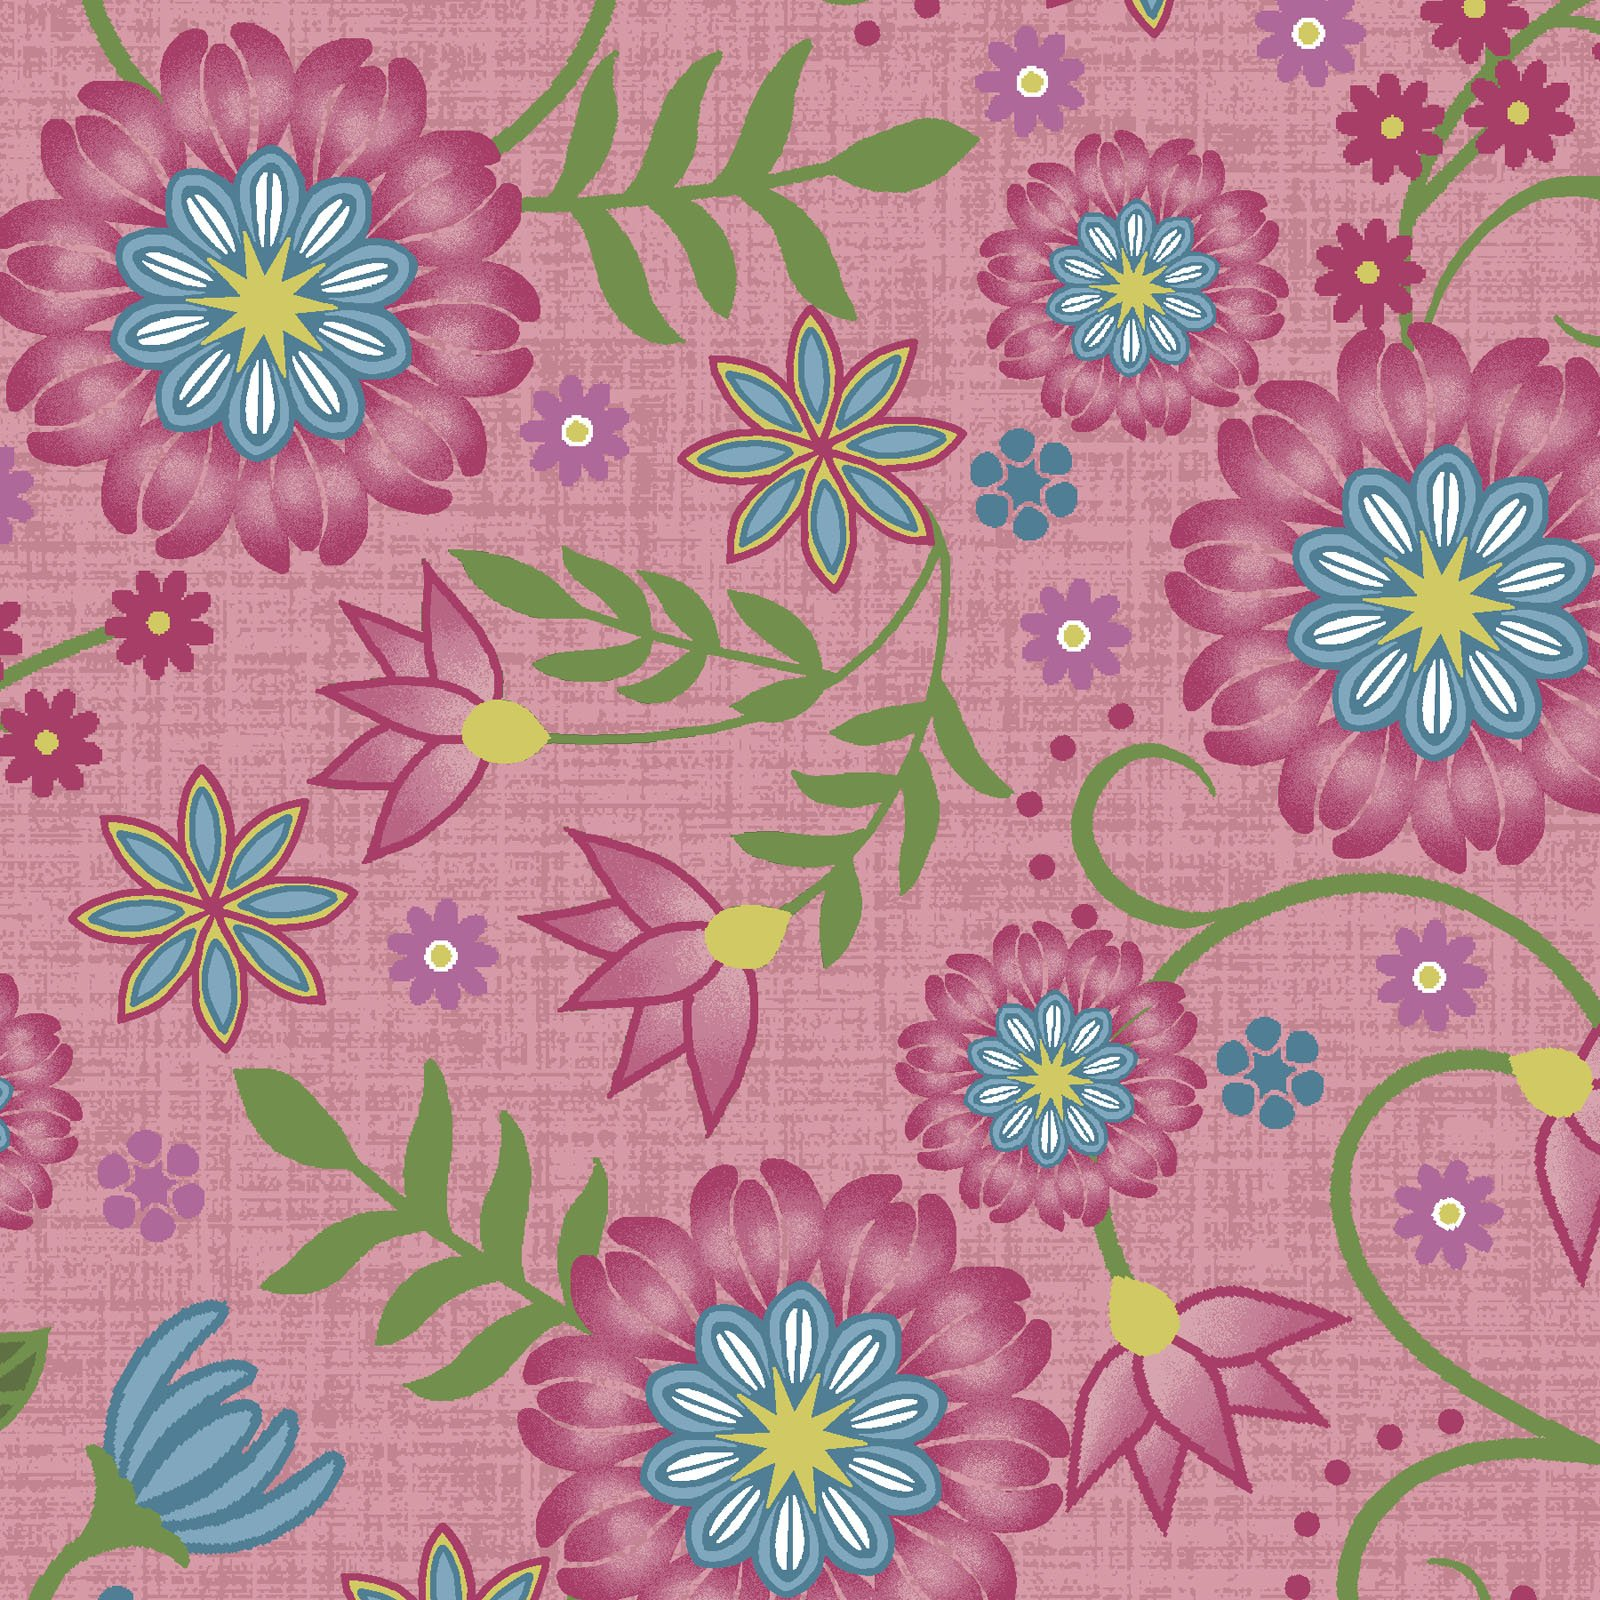 EESC-9880 P - FLOWER & VINE BY MONIQUE JACOBS FLOWER & VINE PINK - AVAILABLE TO ORDER